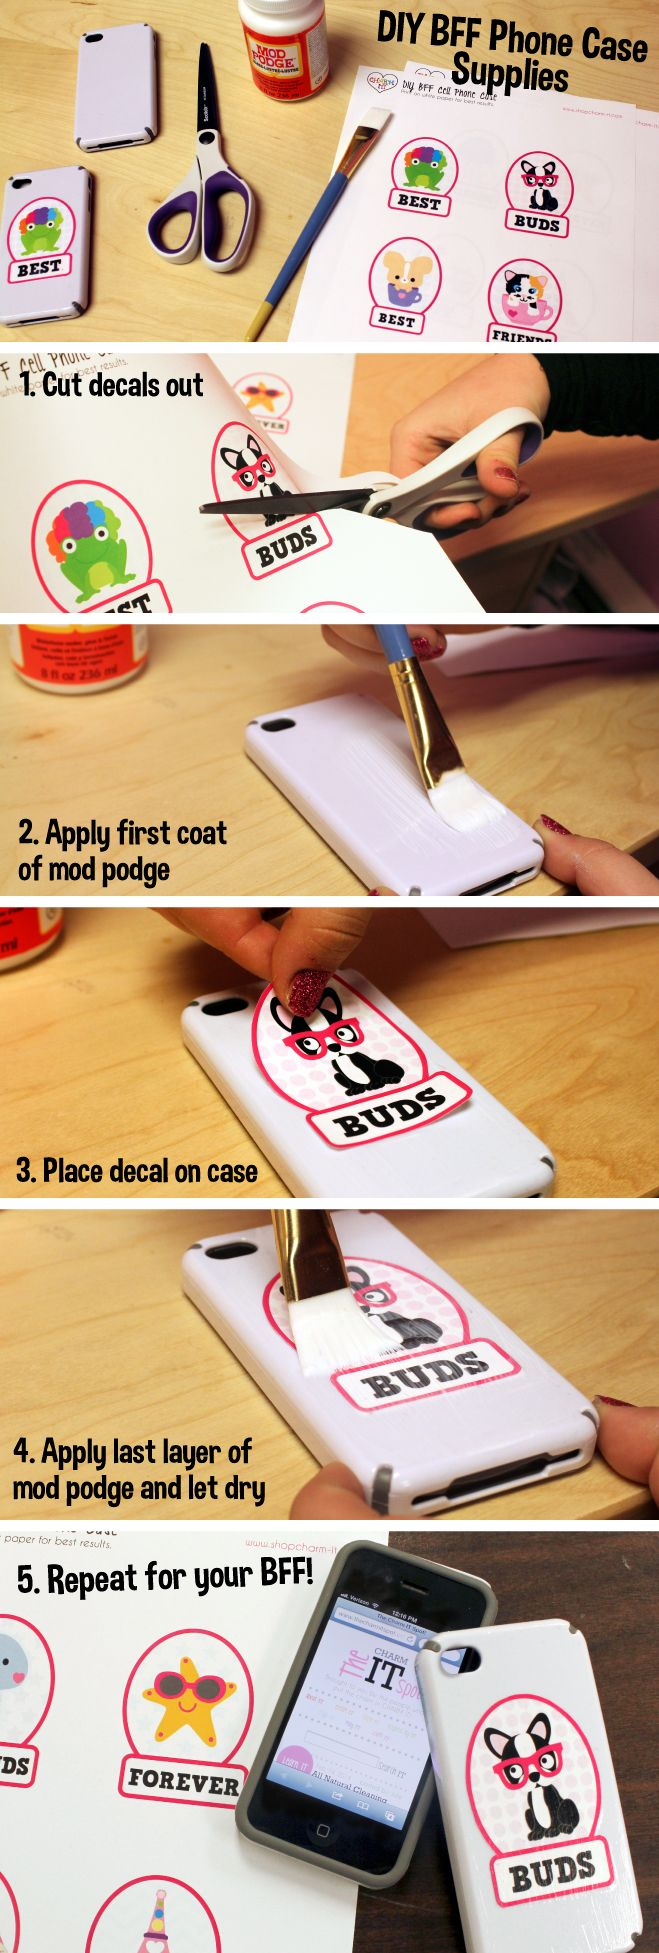 Create IT:  BFF DIY Phone Covers.  Make adorable phone cases (one for you, one for your bff) with our free printables and tutorial!